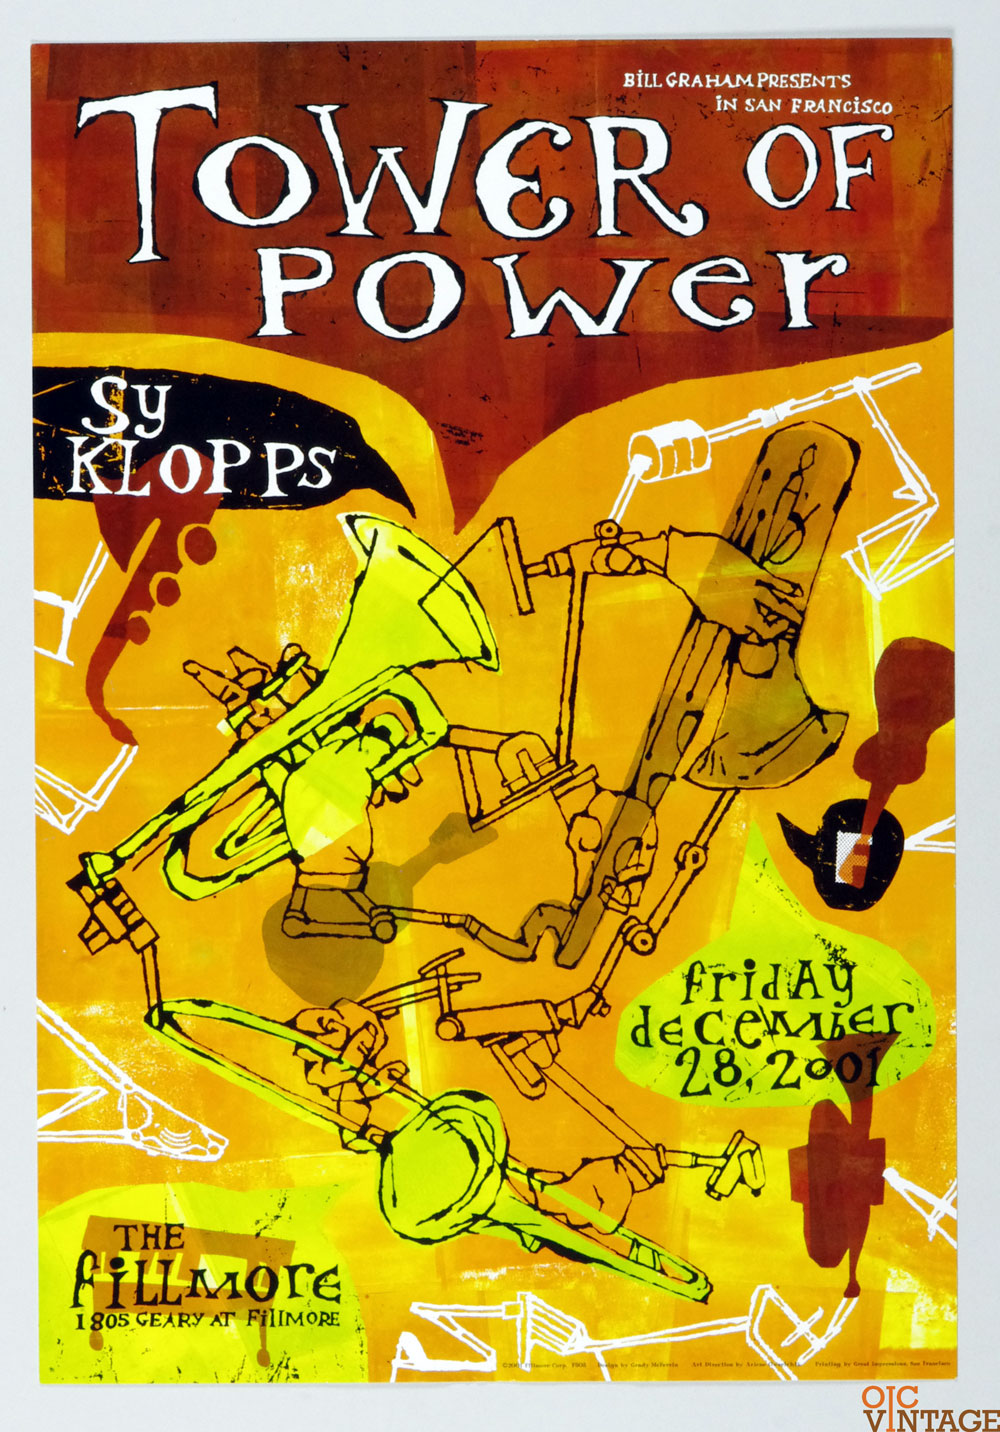 New Fillmore F503 Poster Tower of Power SY Klopps 2001 Dec 28